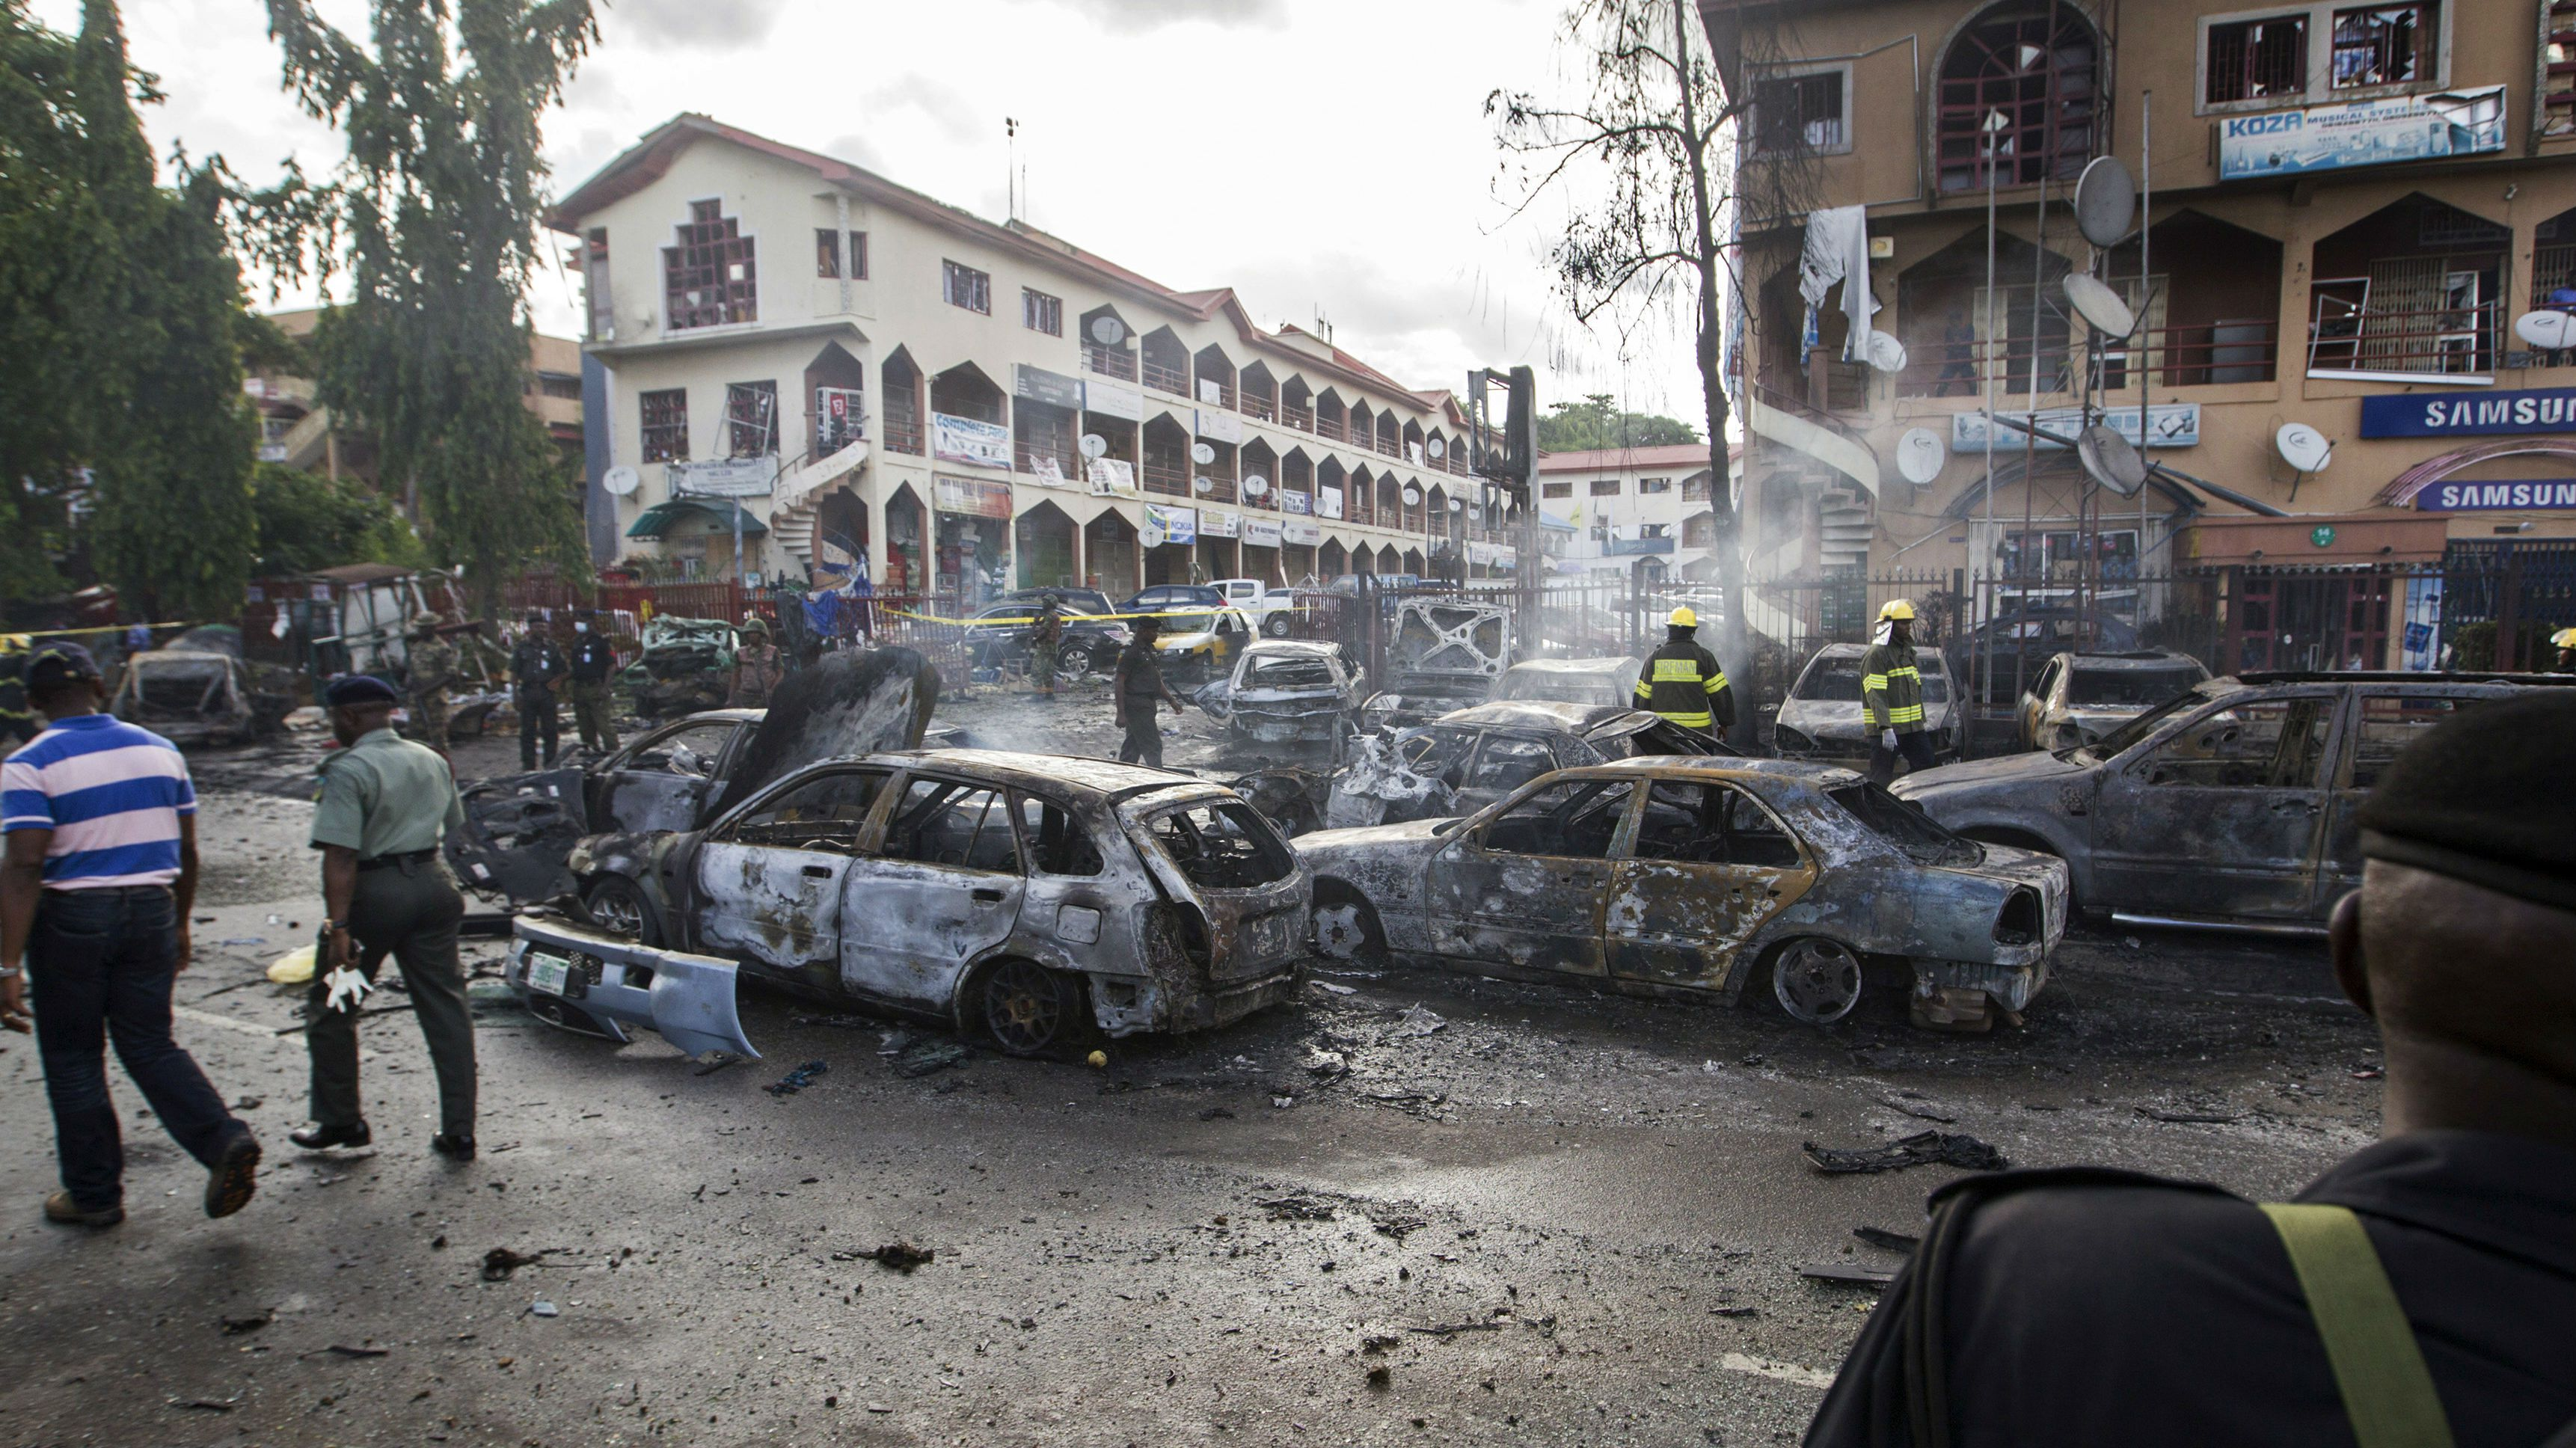 Burnt-out cars are seen at the scene of a blast in Abuja, June 25, 2014. At least 21 people were killed when a suspected bomb tore through a crowded shopping district in the Nigerian capital Abuja during rush hour on Wednesday, police said, adding to the toll of thousands killed in attacks this year. It was not immediately clear who was responsible for the blast and no one claimed responsibility. However, militant Islamist group Boko Haram has increasingly targeted civilians in its bloody five-year insurgency. REUTERS/Afolabi Sotunde (NIGERA - Tags: CIVIL UNREST CRIME LAW TPX IMAGES OF THE DAY)